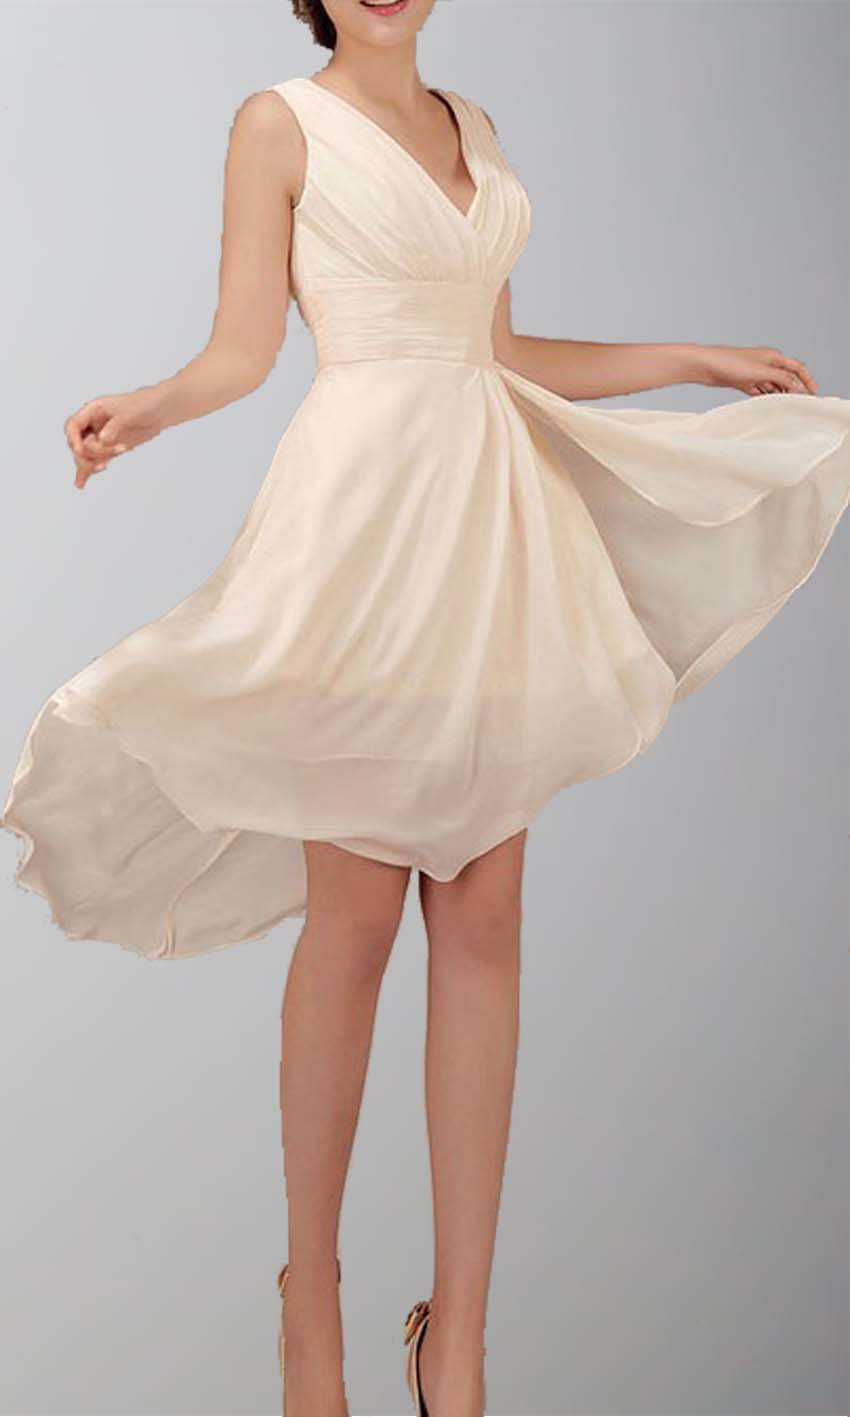 Chiffon V-neck Rrregular High Low Short Prom Dresses KSP012 [KSP012] - £78.00 : Cheap Prom Dresses Uk, Bridesmaid Dresses, 2014 Prom & Evening Dresses, Look for cheap elegant prom dresses 2014, cocktail gowns, or dresses for special occasions? kissprom.co.uk offers various bridesmaid dresses, evening dress, free shipping to UK etc.